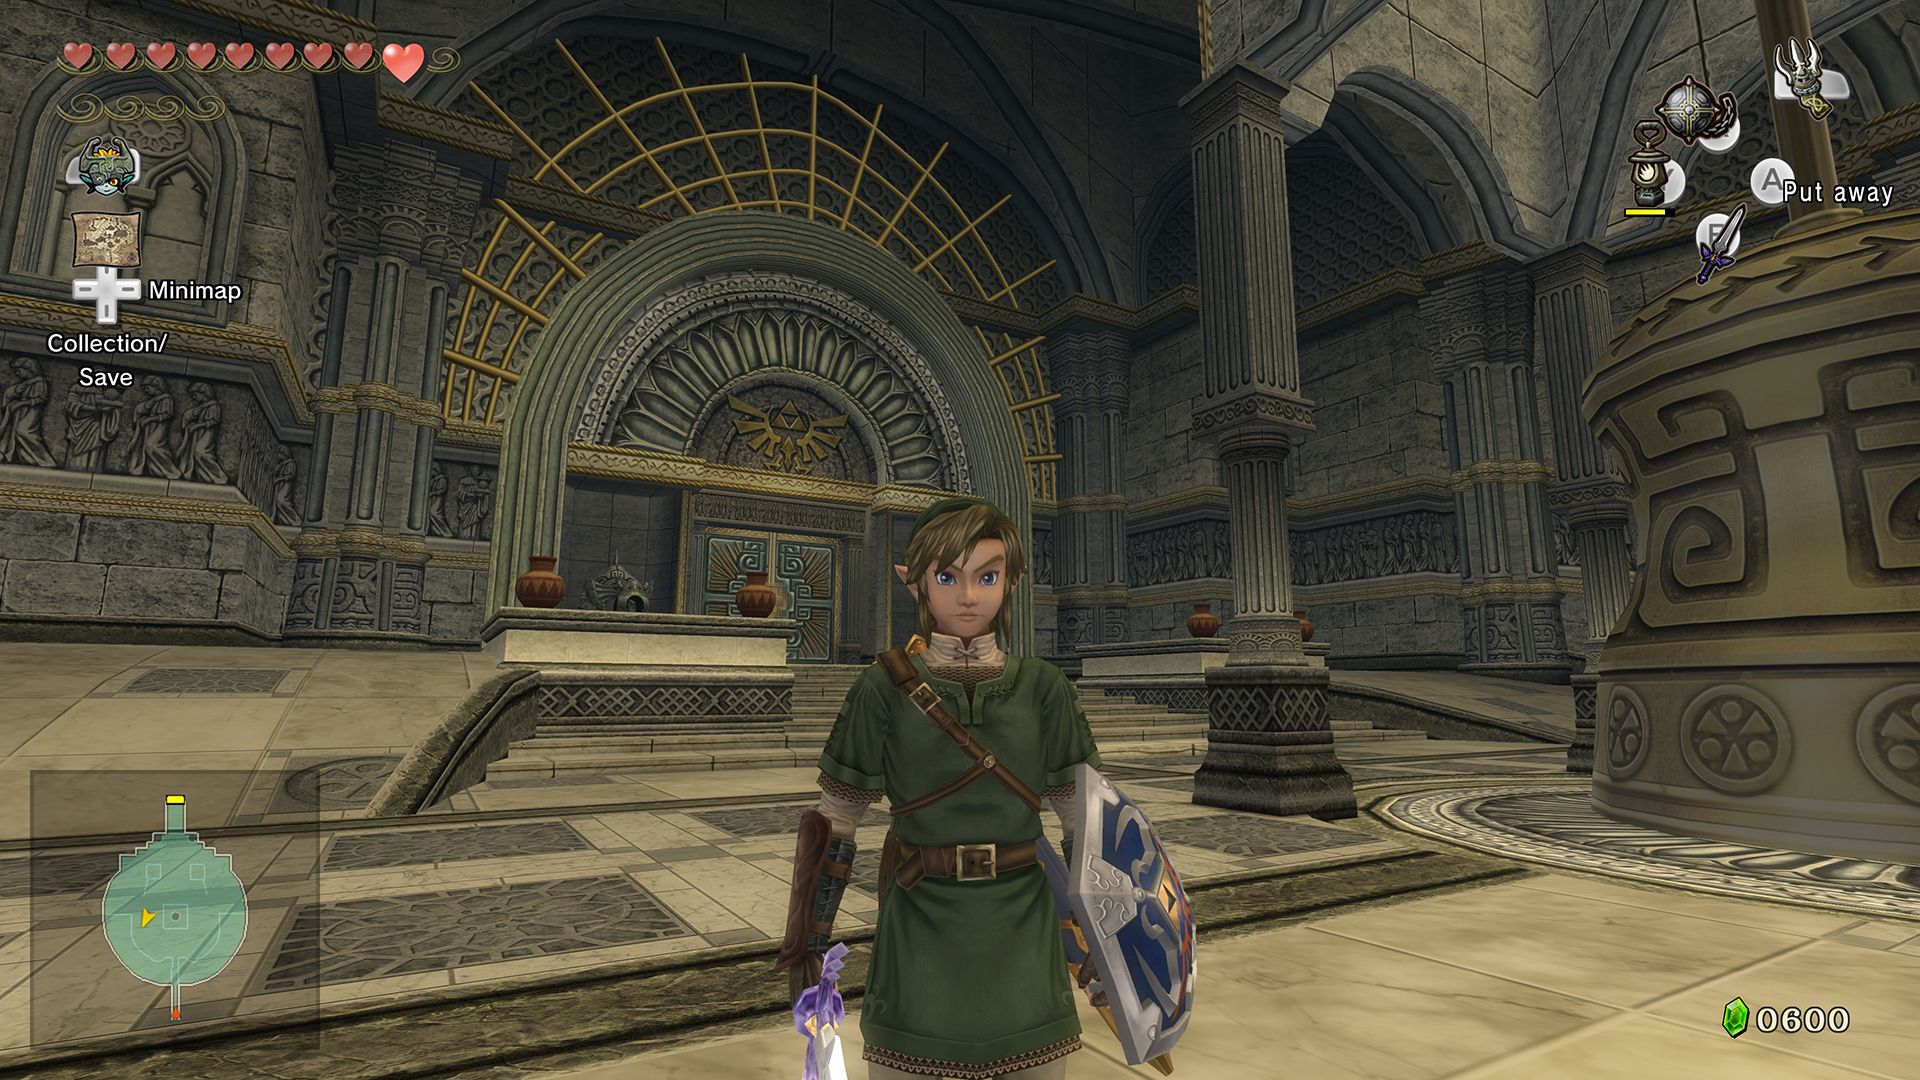 dolphin emulator twilight princess hd